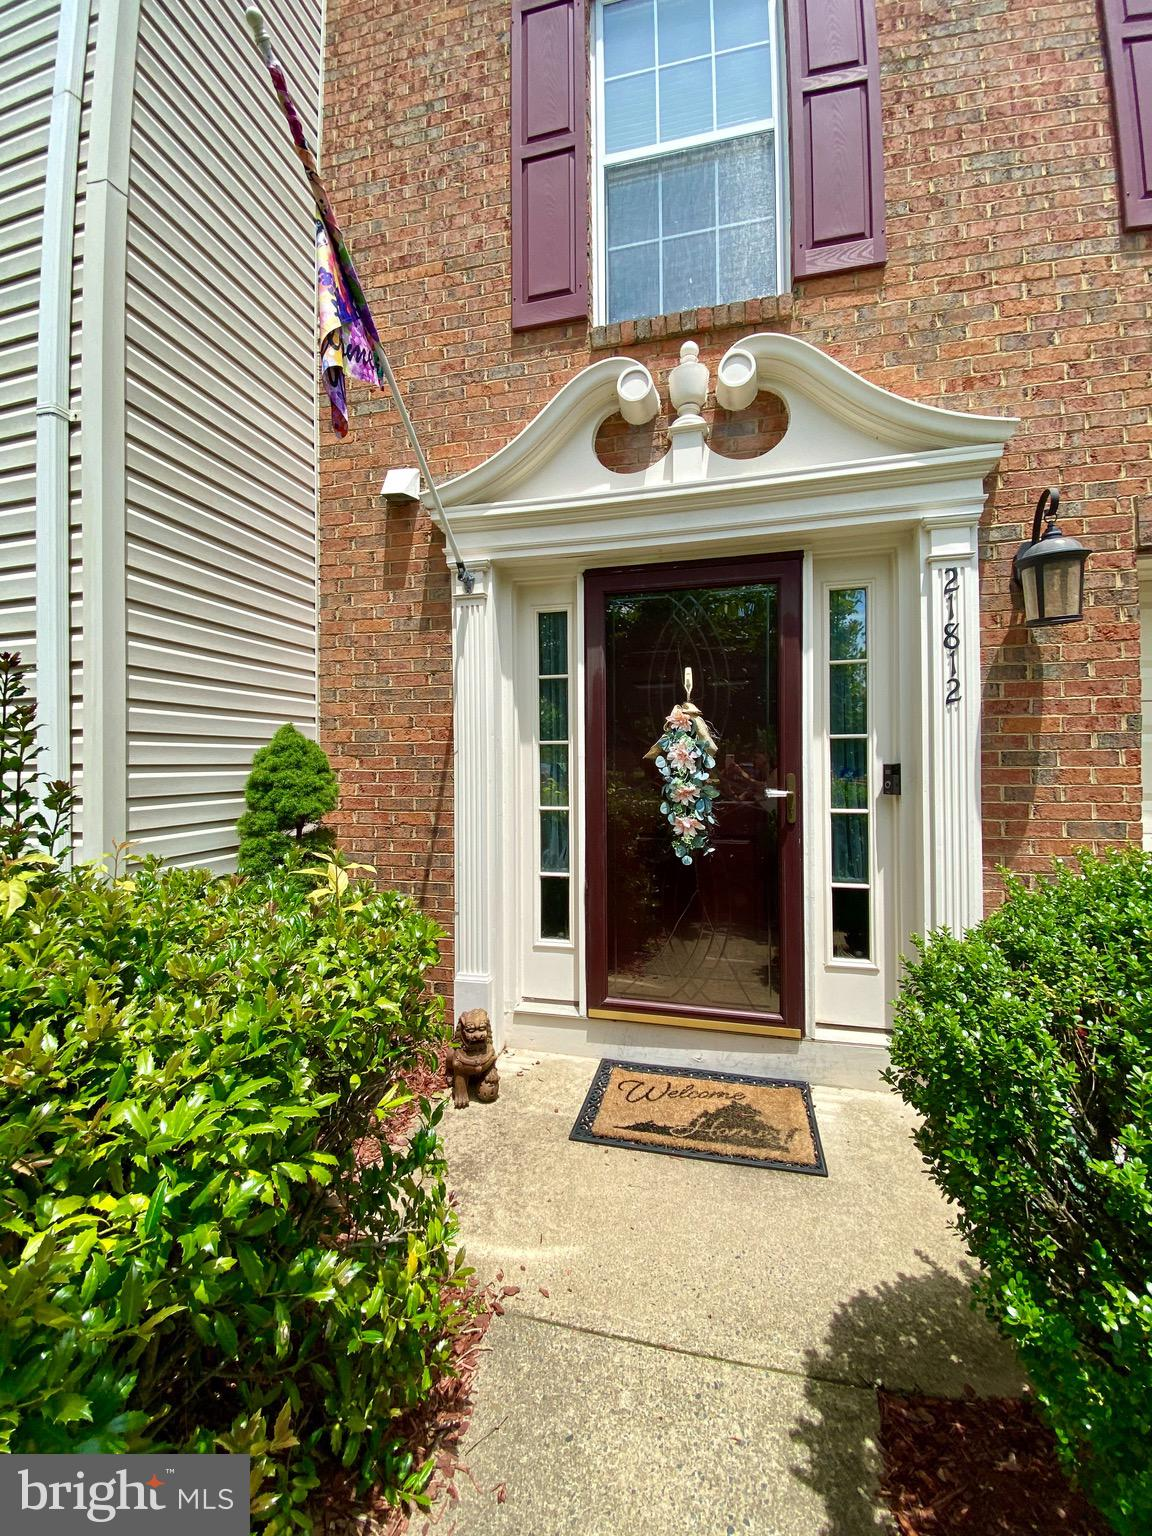 This extraordinary well-kept brick front townhome w/ 1 car garage shows Pride of Ownership throughou